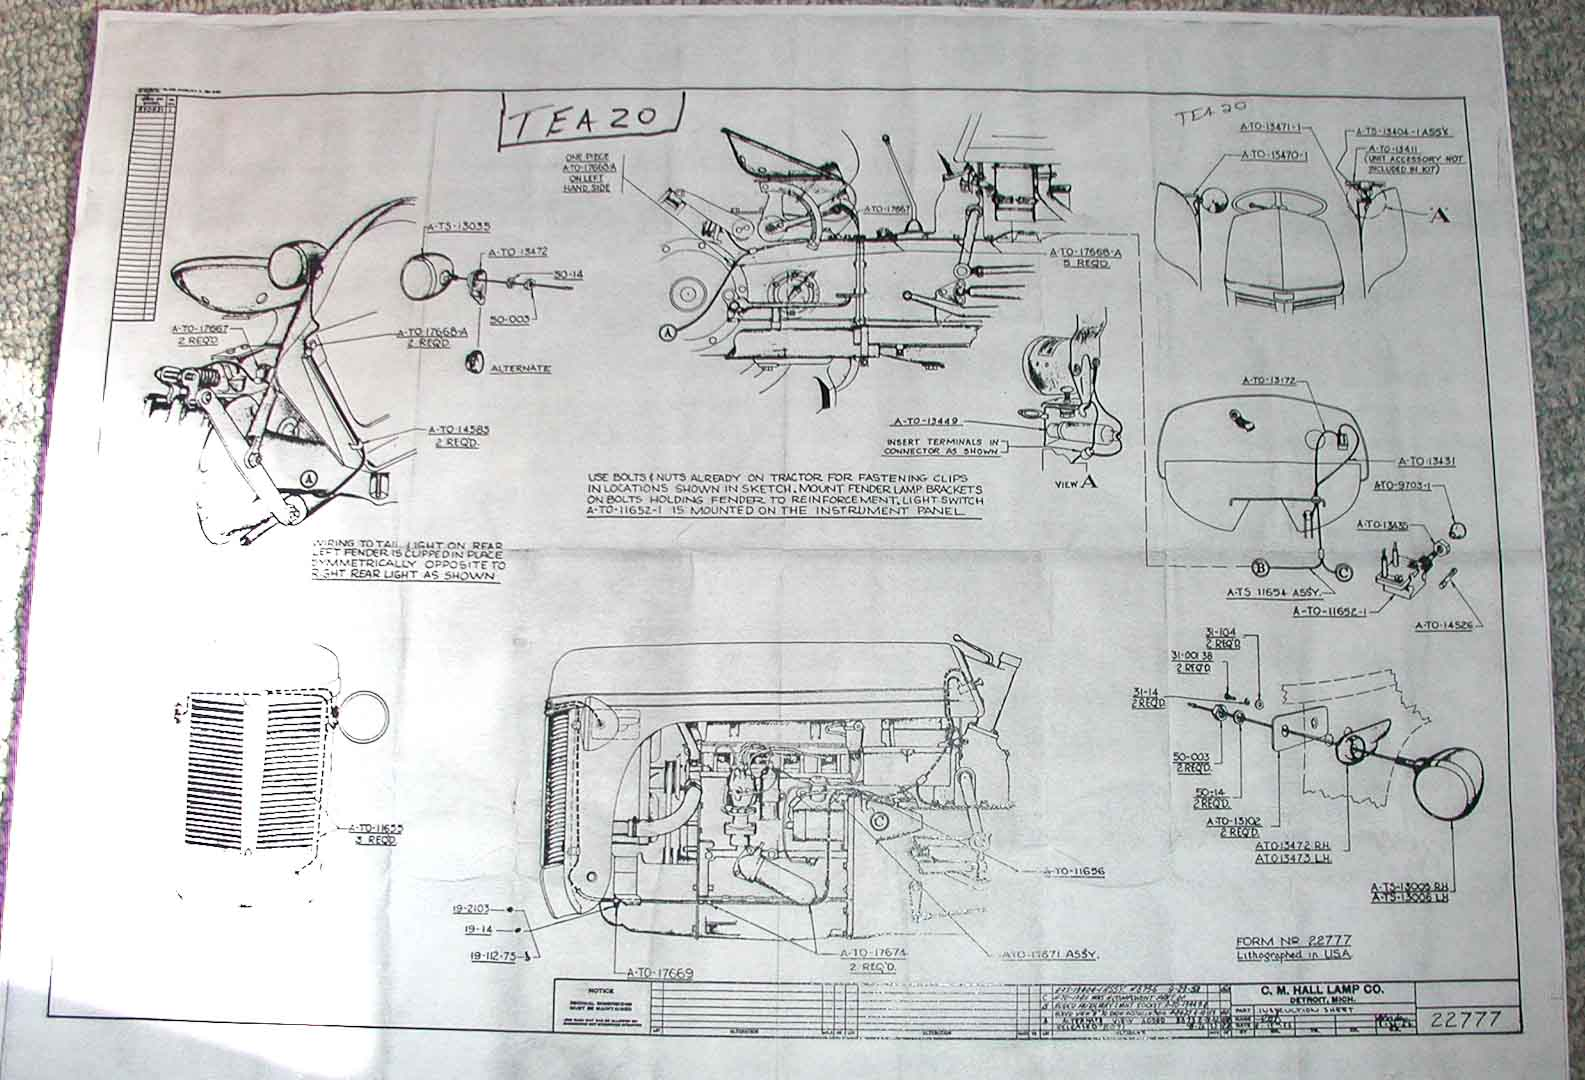 TEA20 Lighting Harness ferguson tea 20 wiring diagram ferguson te20 wiring diagram at fashall.co